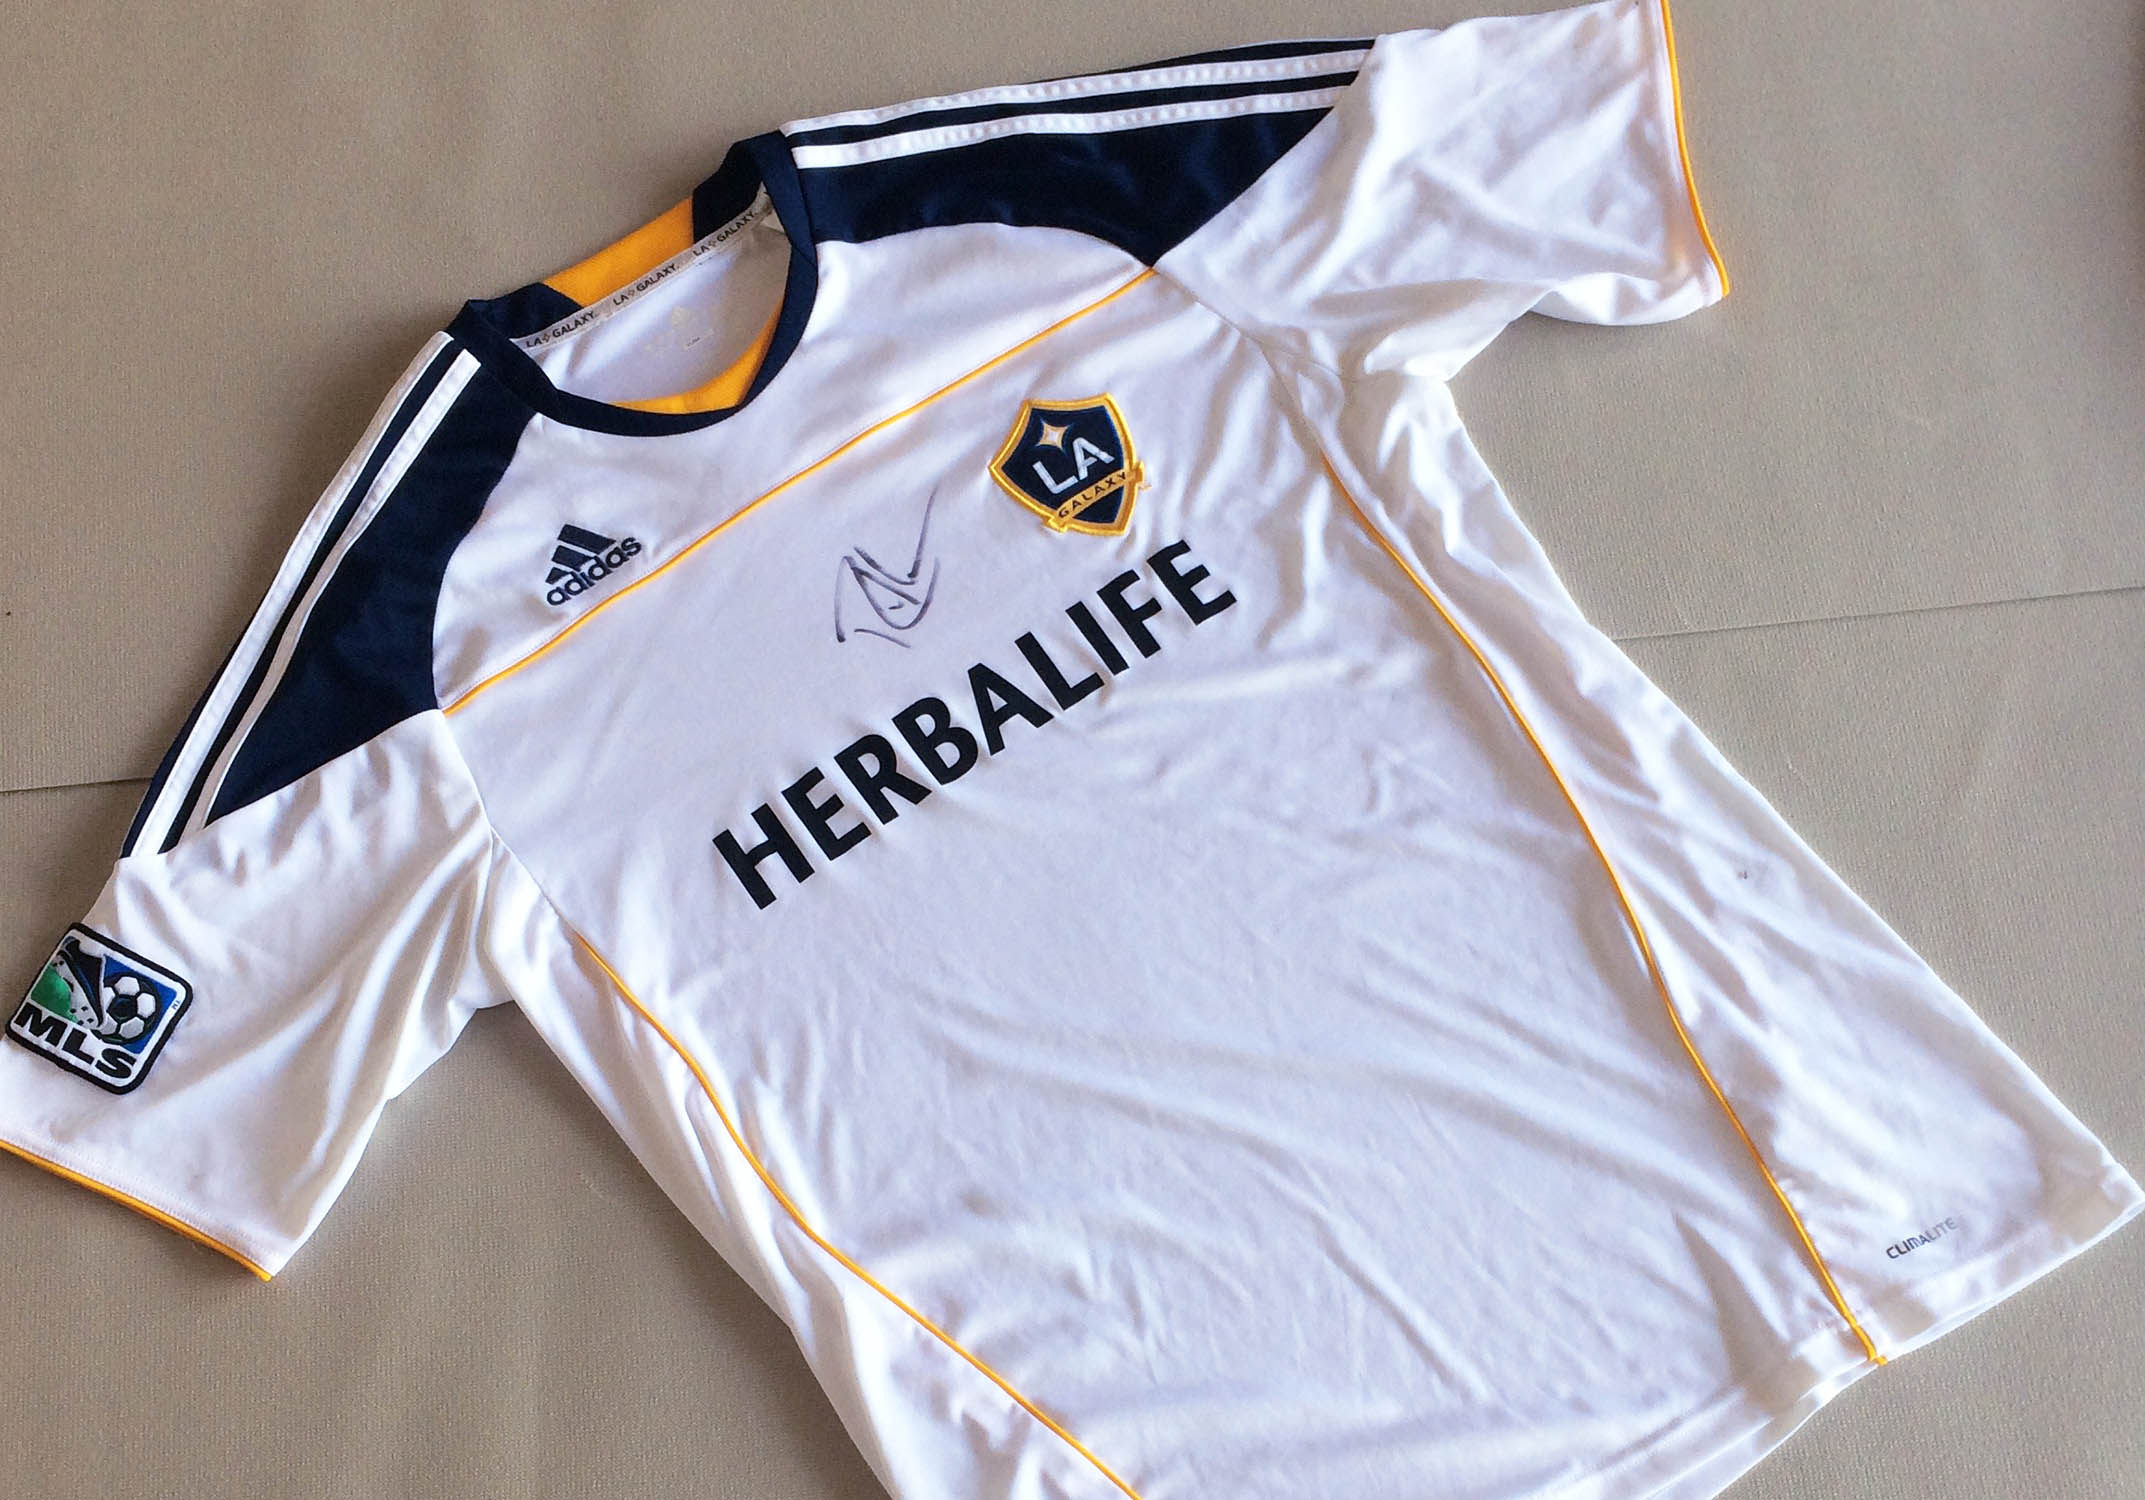 detailed look e46e7 2f465 Galaxy Jersey Autographed by Robbie Keane